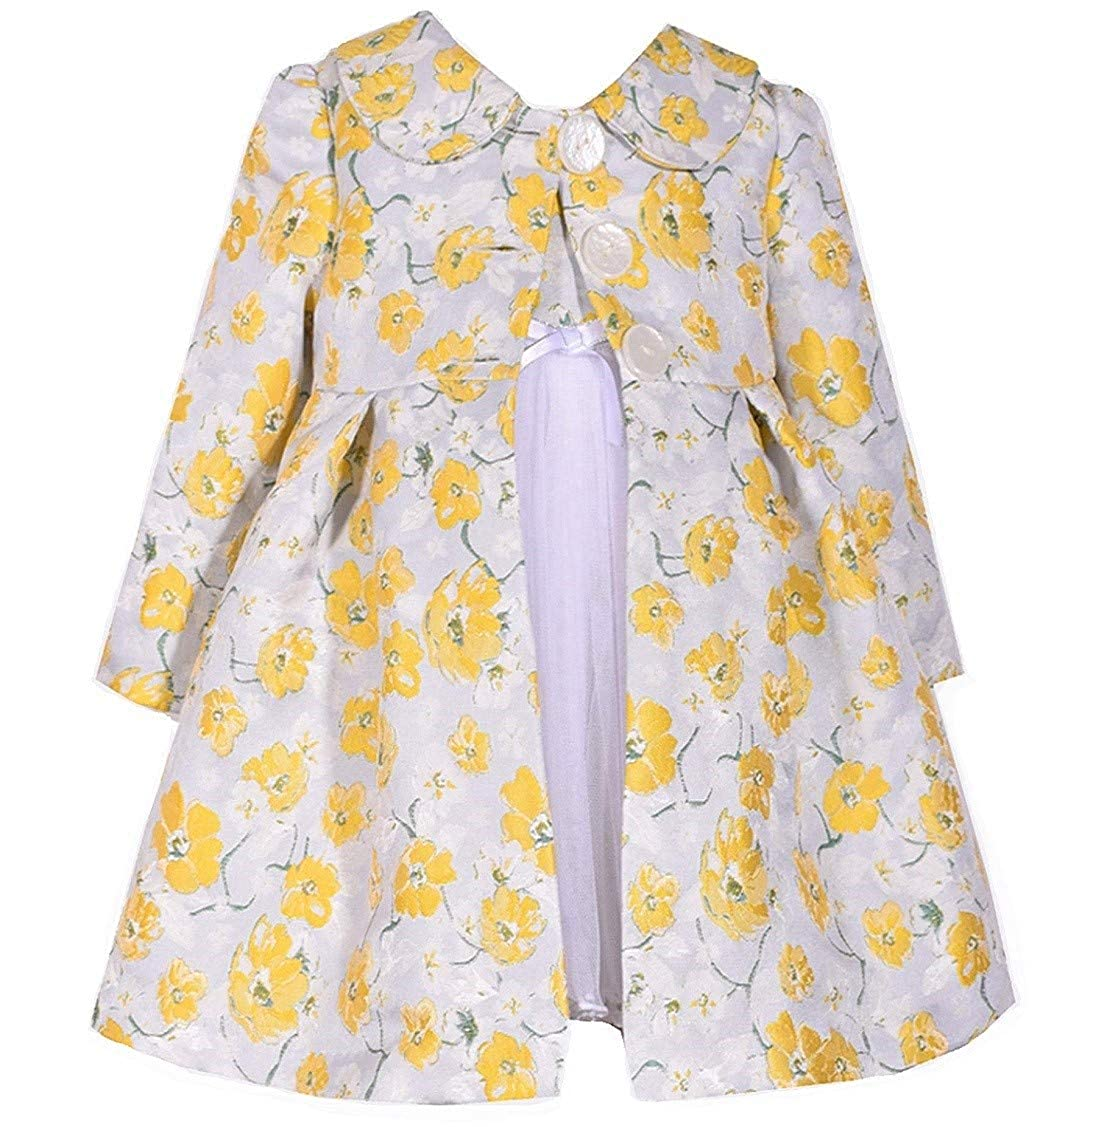 Kids 1950s Clothing & Costumes: Girls, Boys, Toddlers Bonnie Jean Baby Toddler 12M-4T Yellow Floral Brocade Dress Coat Set $32.90 AT vintagedancer.com